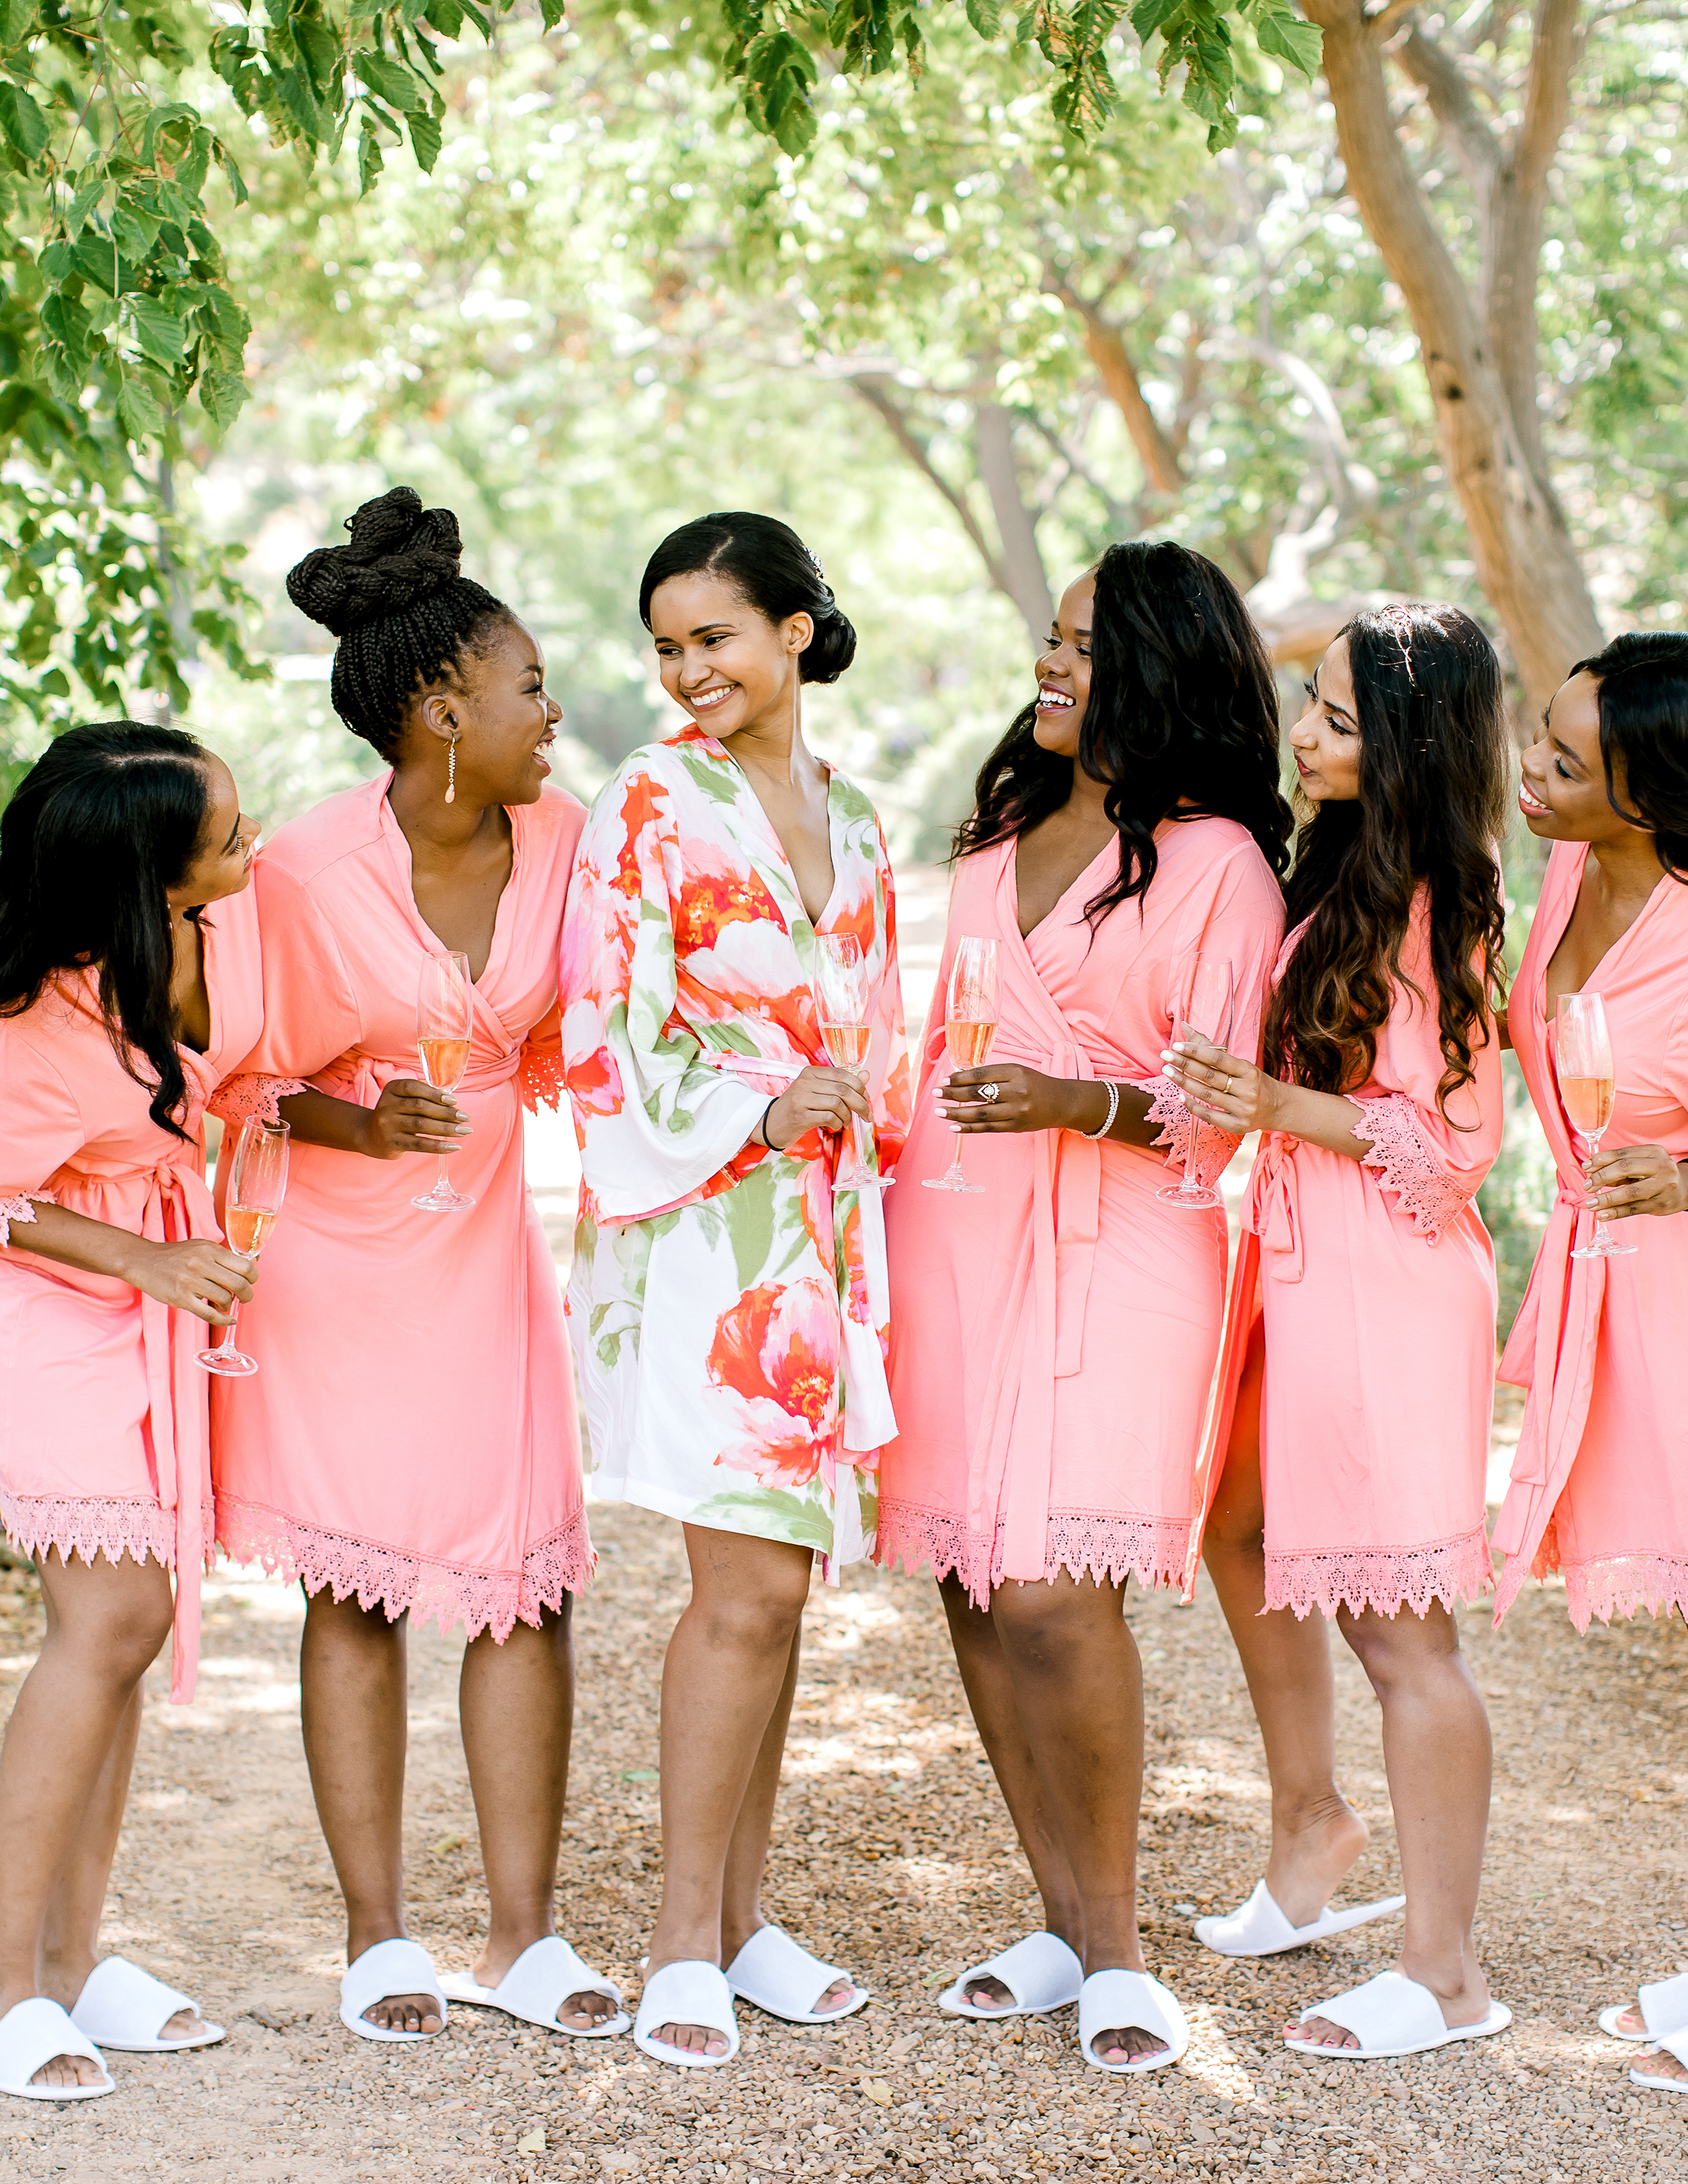 rorisang stephen bride getting ready with bridesmaids in robes